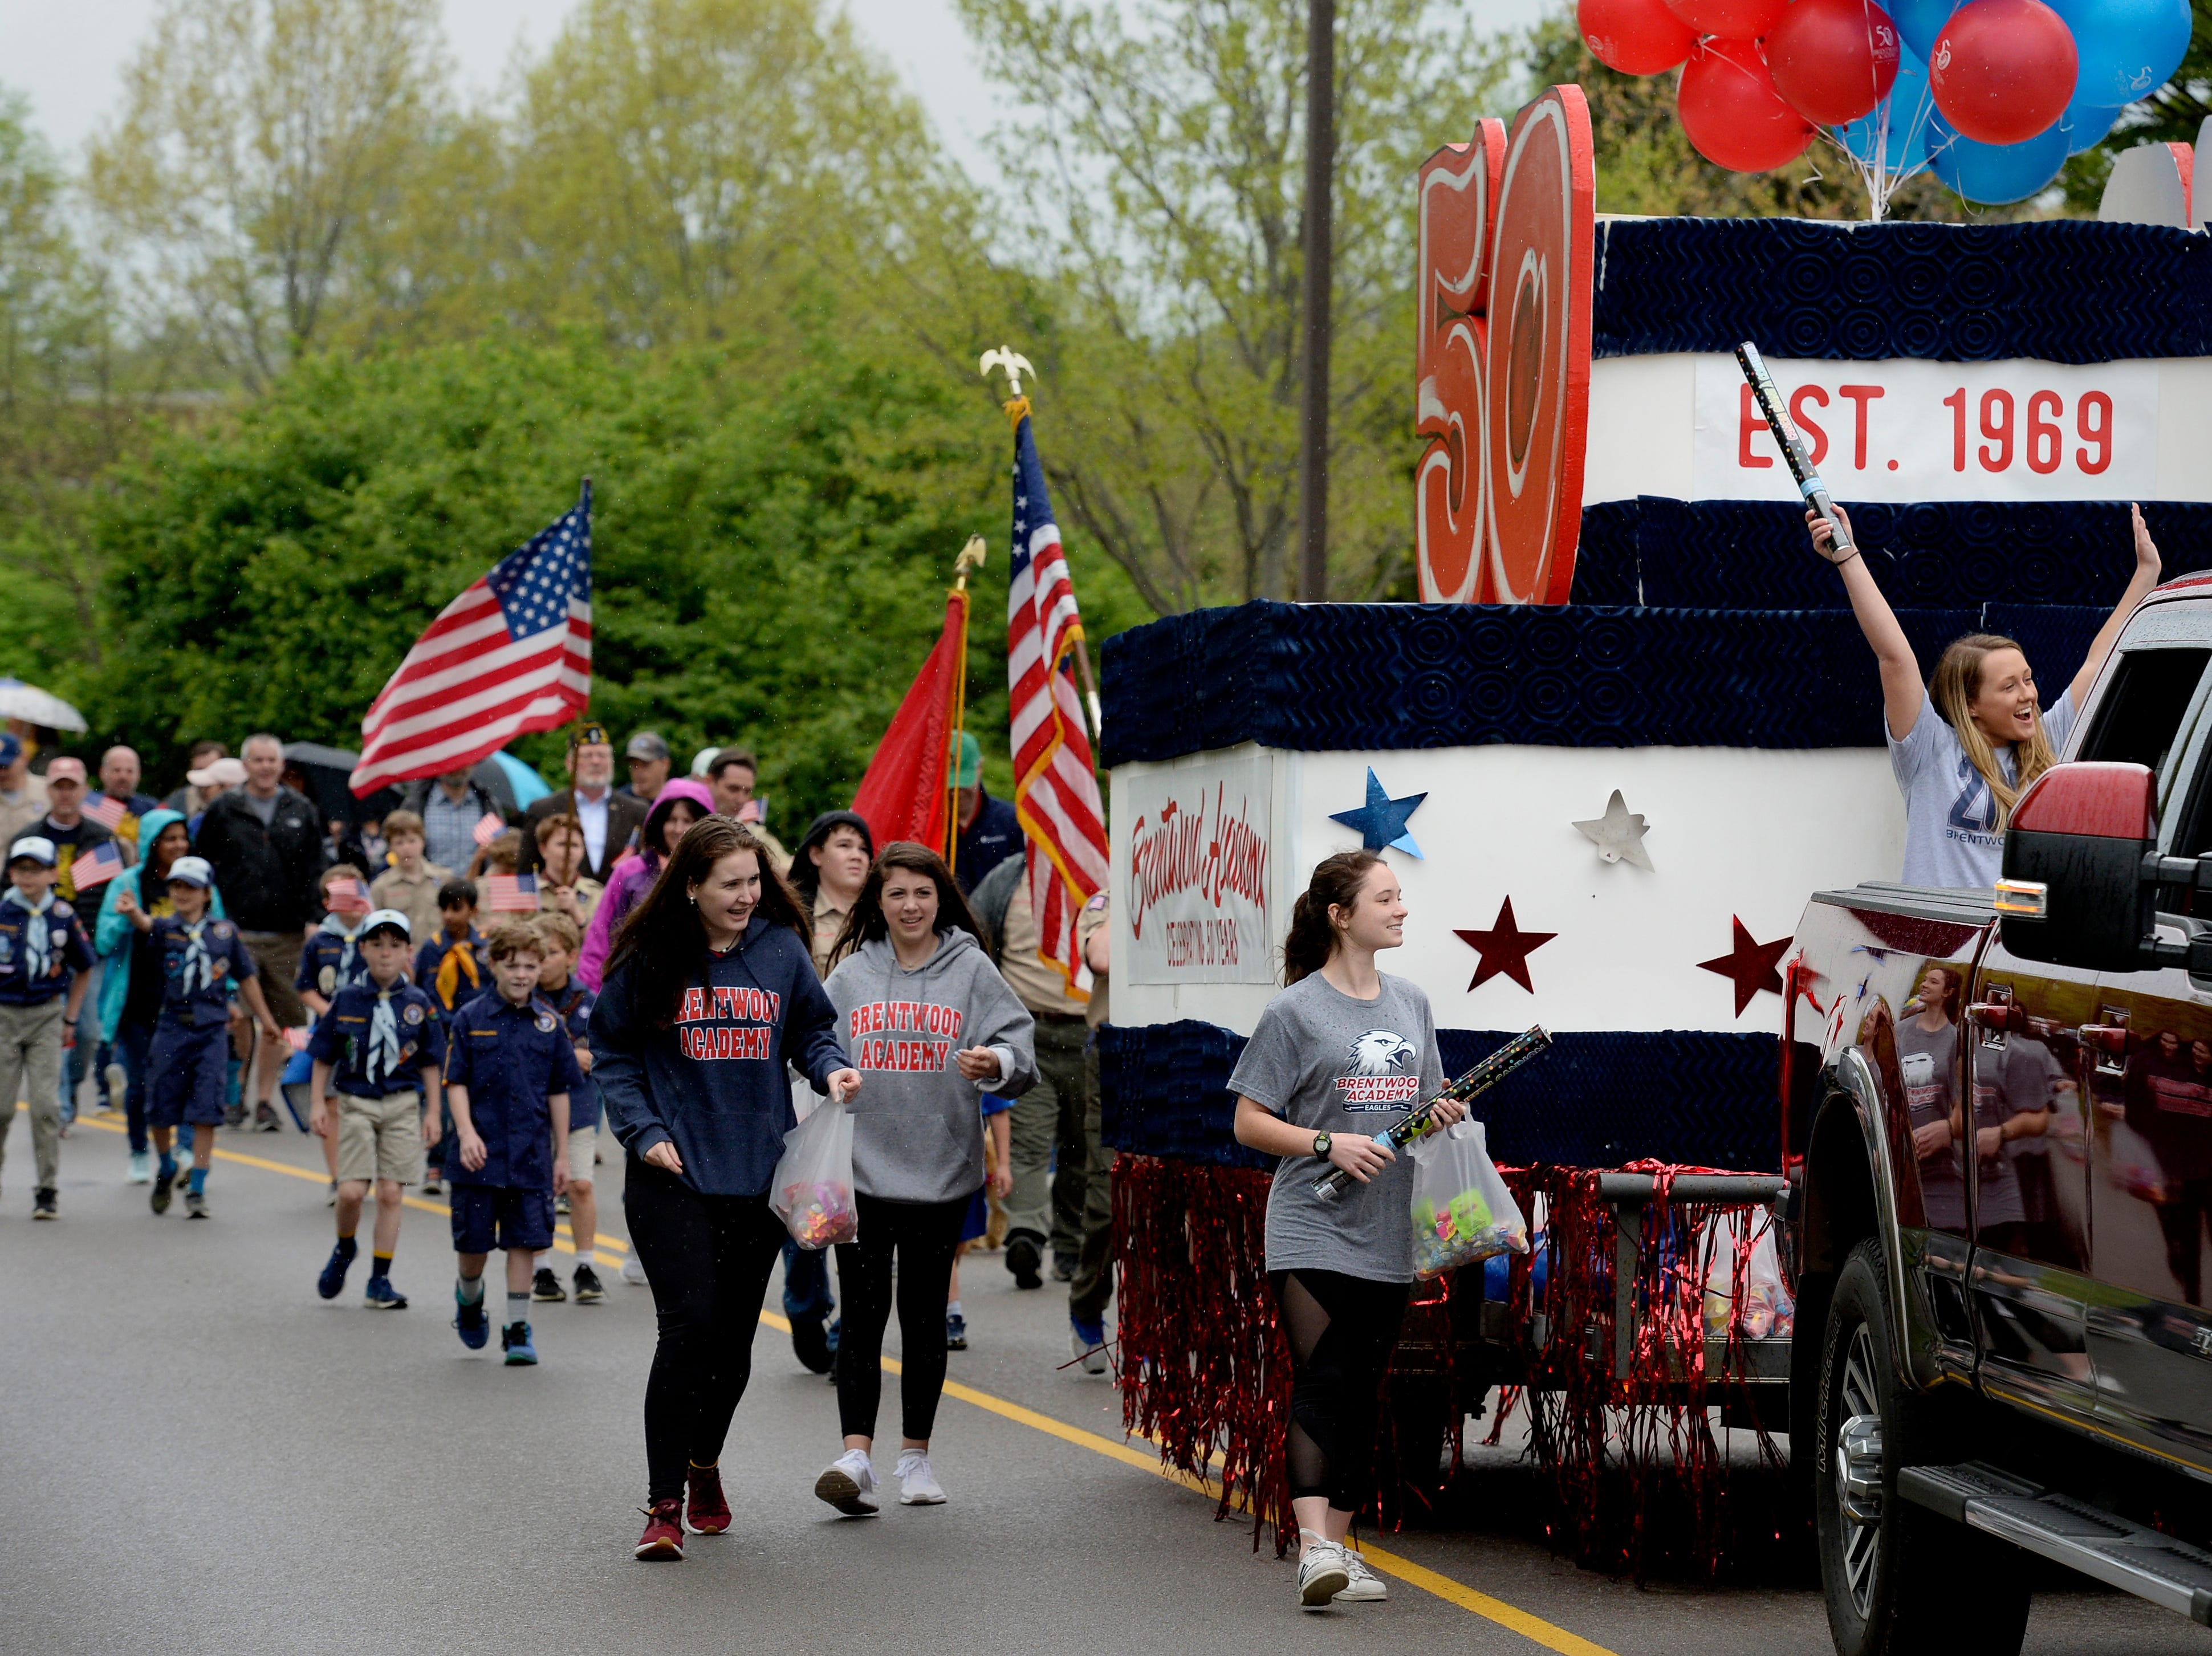 """People walk and cheer as they participate in Brentwood's """"A Golden Gallop"""" parade celebrating its 50th year as a community on Saturday, April 13, 2019, in Brentwood, Tenn."""